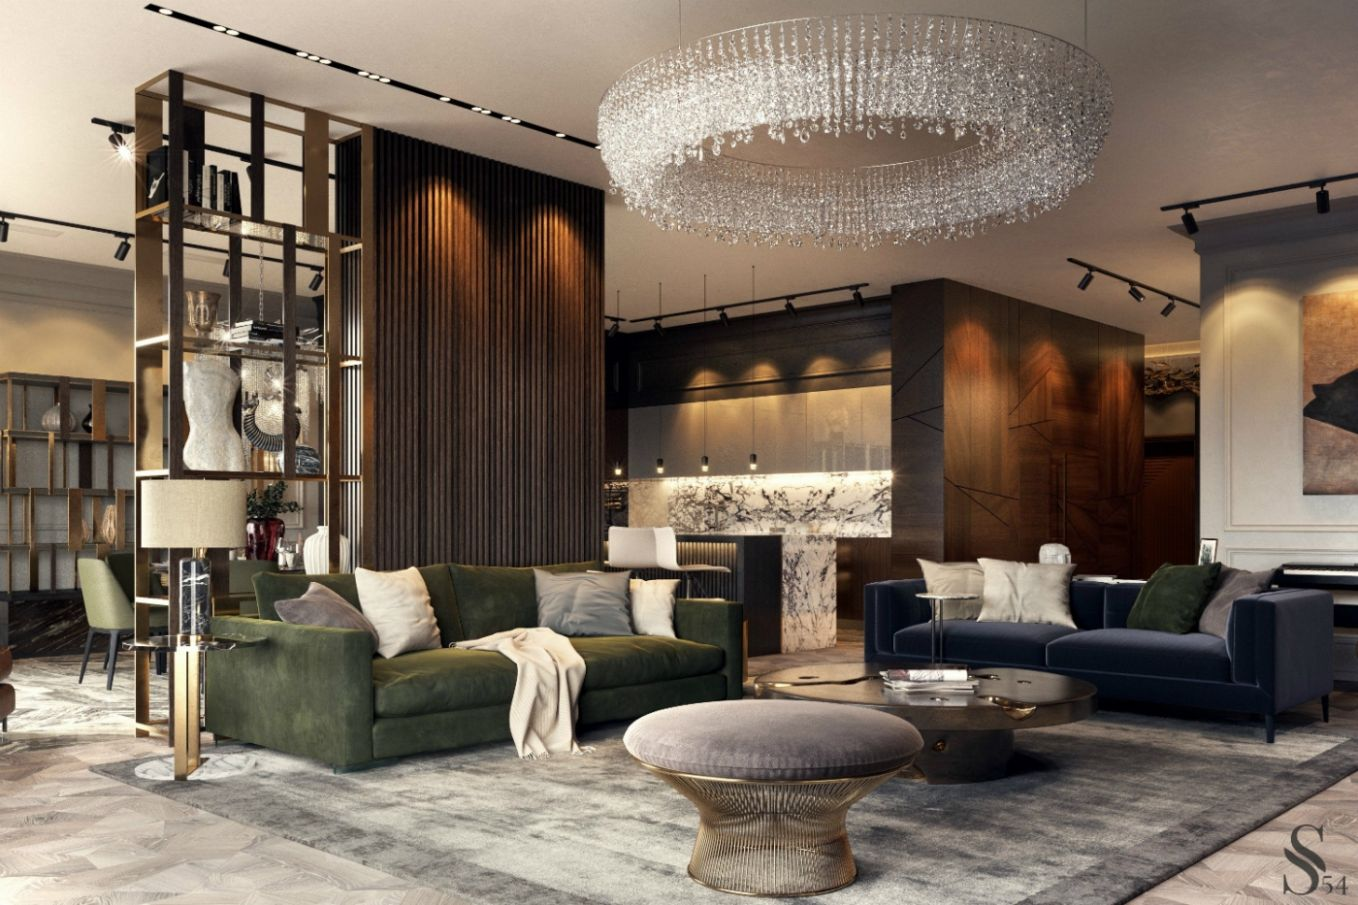 Earth Tones Set The Mood In This Luxury Moscow Apartment - living room ideas earth tones